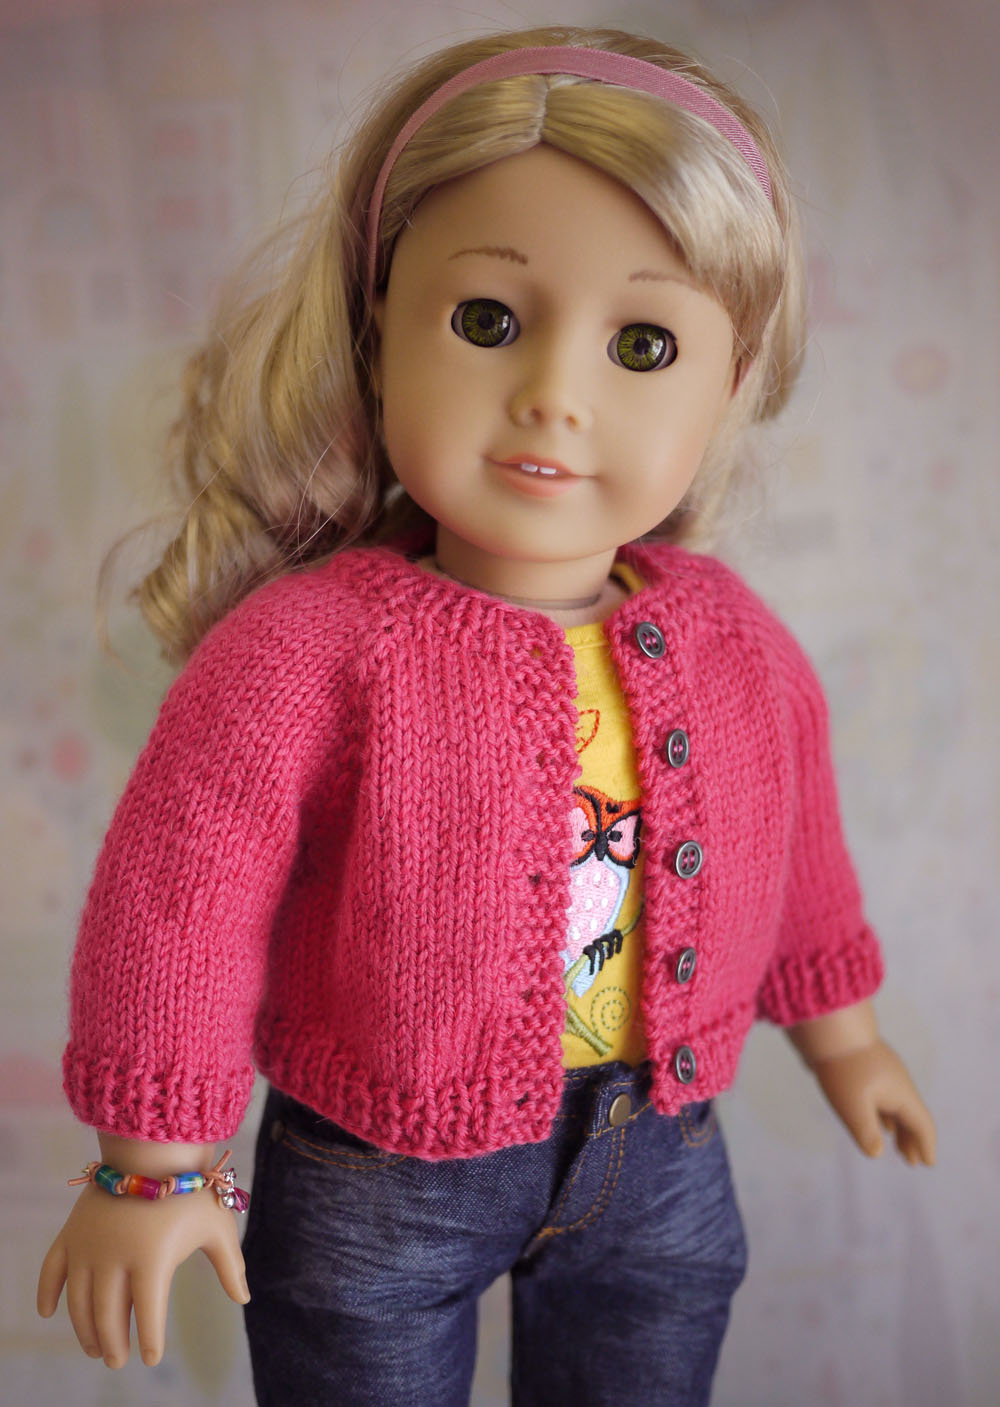 Free Knitted Doll Pattern : free knitting patterns for american girl doll - Music Search Engine at Search...